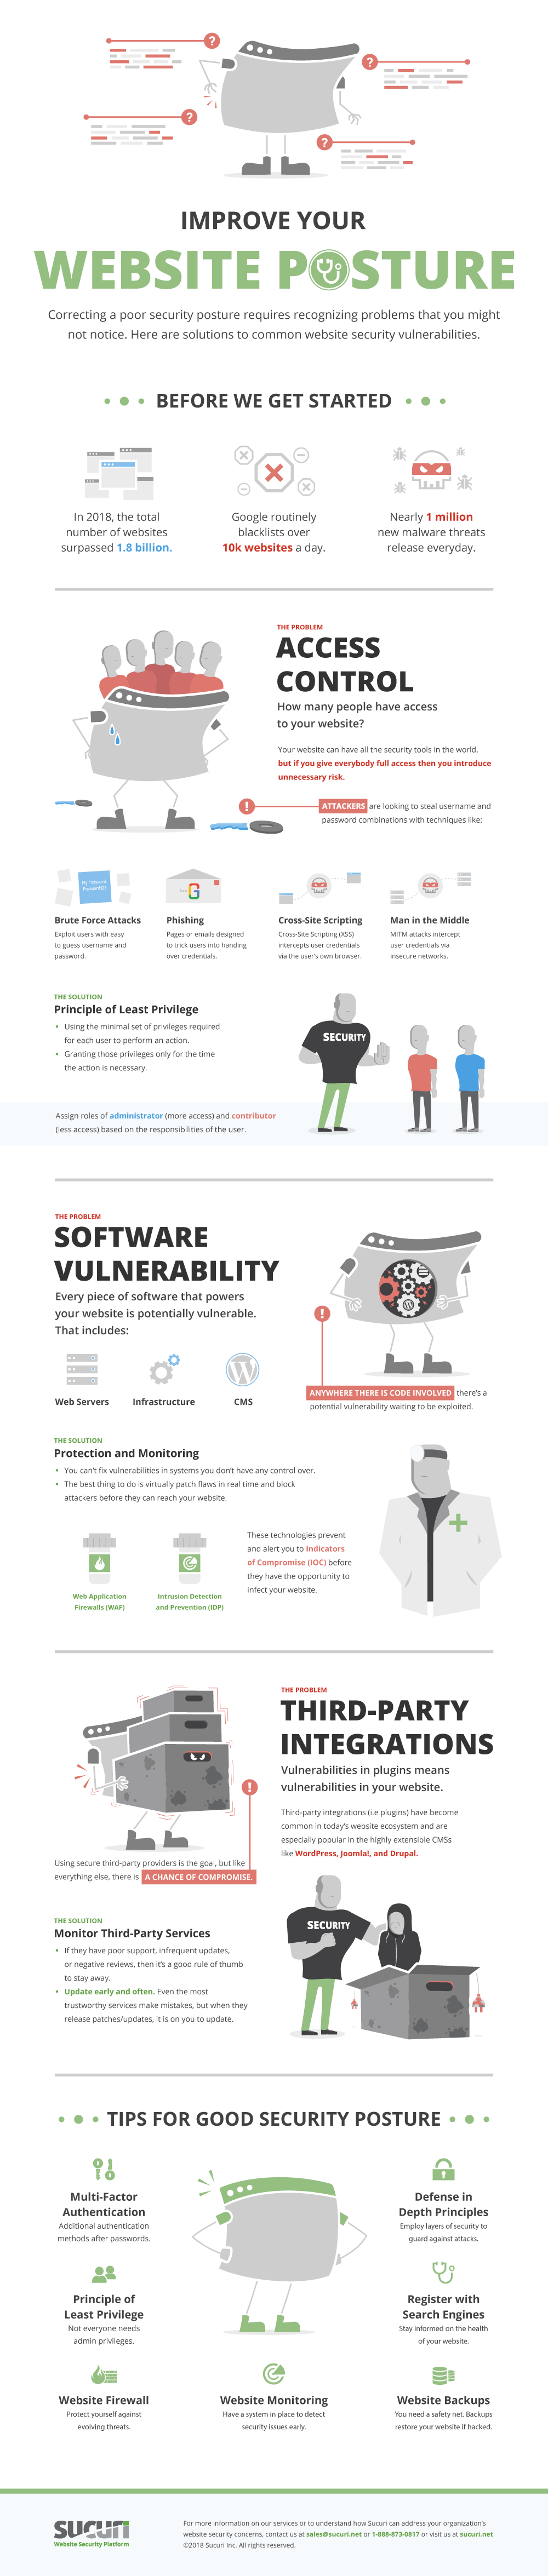 Improve Your Website Security Posture